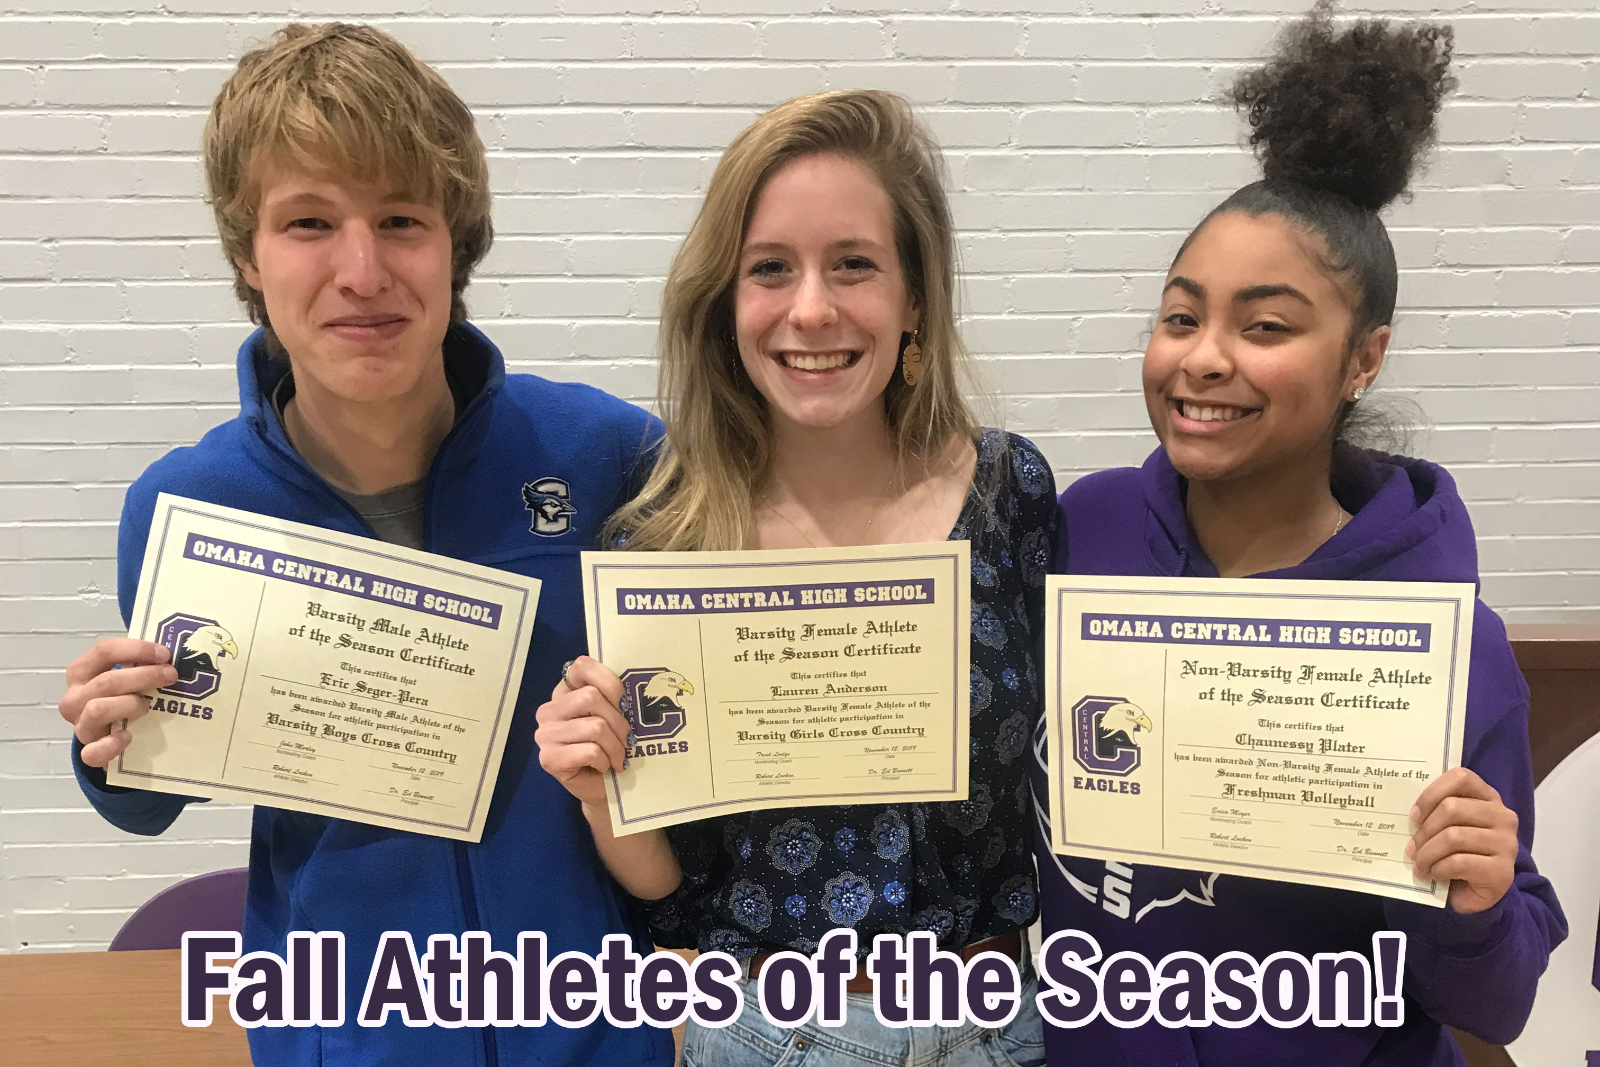 Fall Athletes of the Season